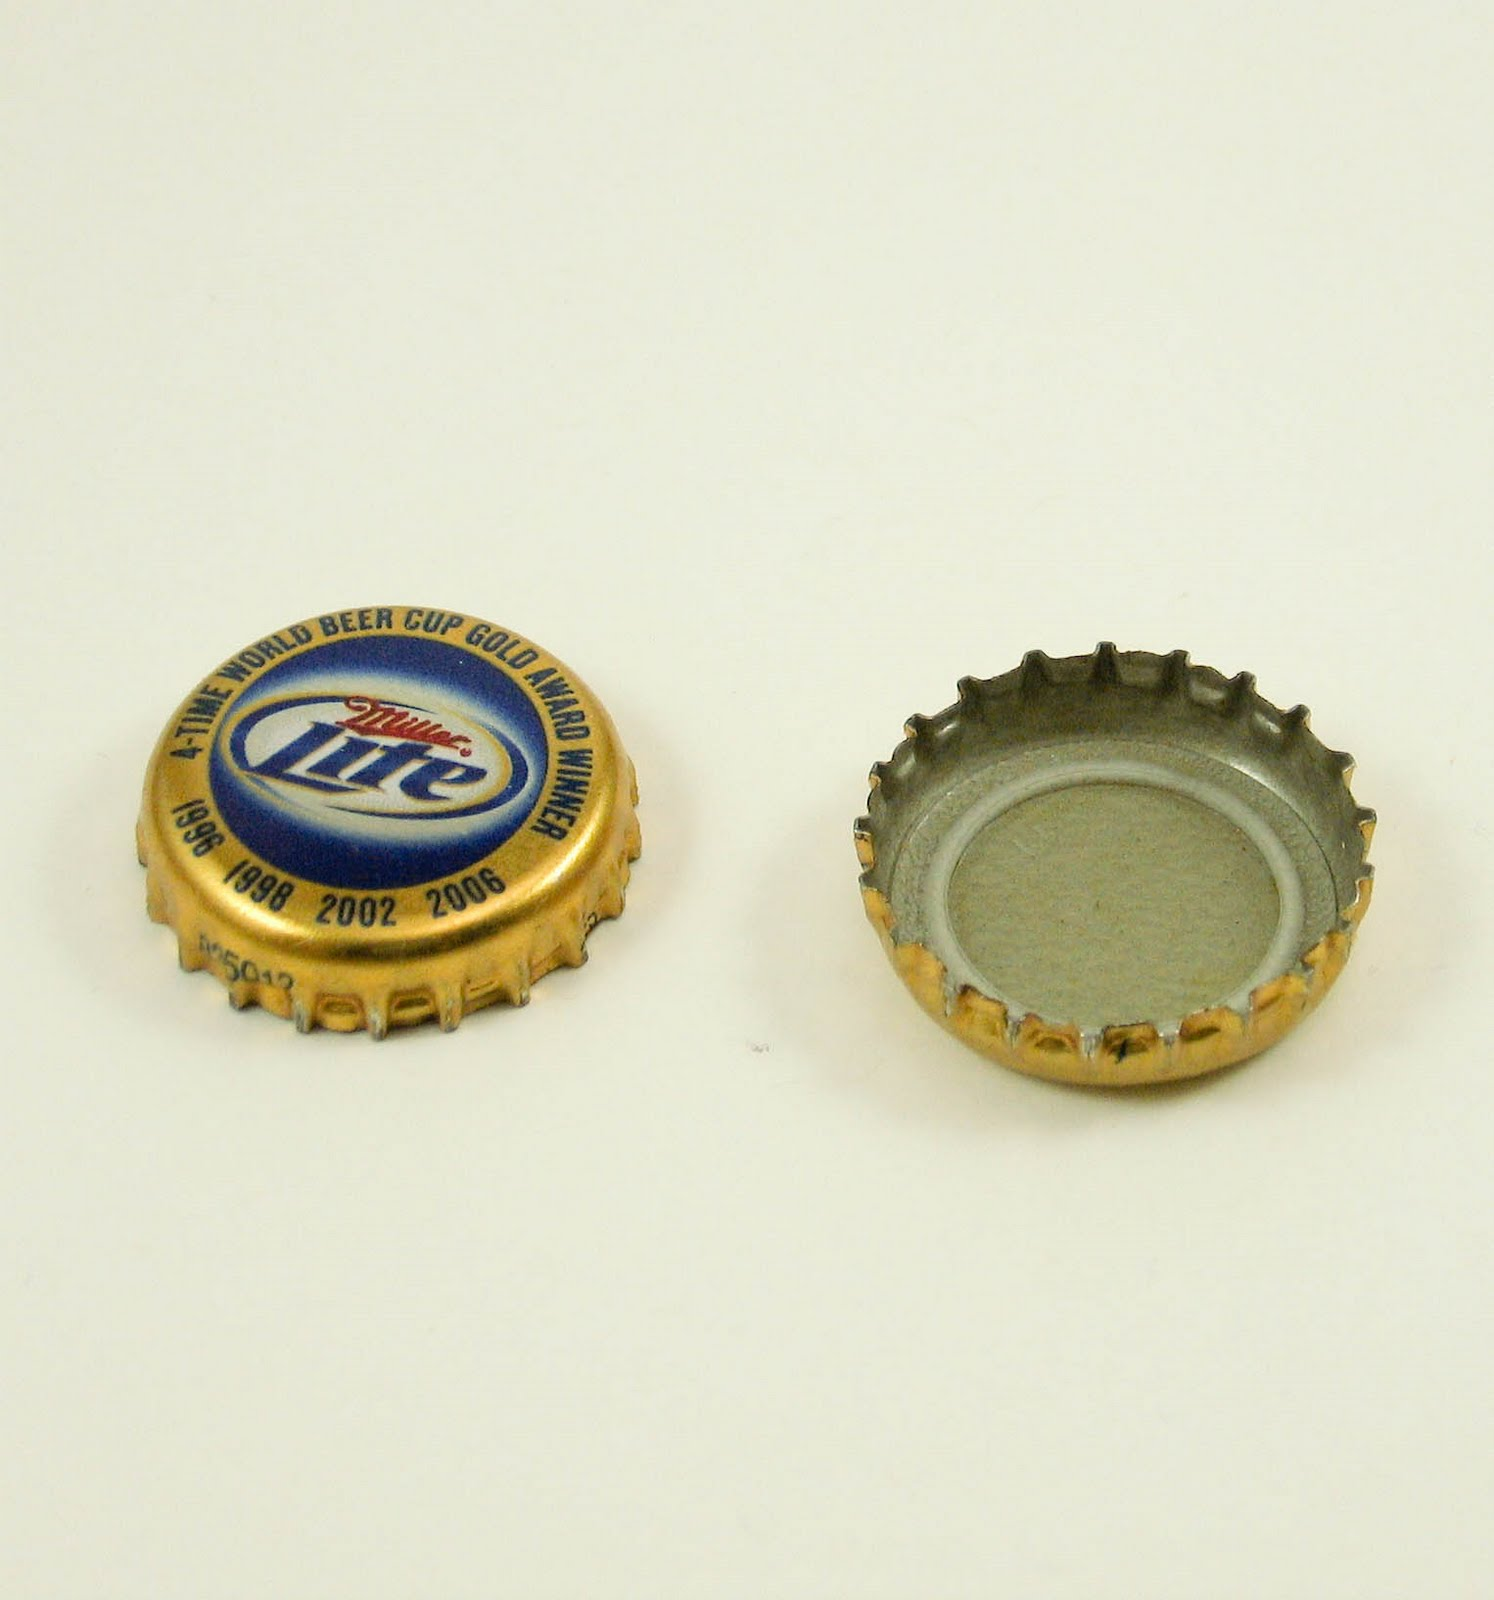 Beer bottle cap cake ideas and designs for What to make with beer bottle caps